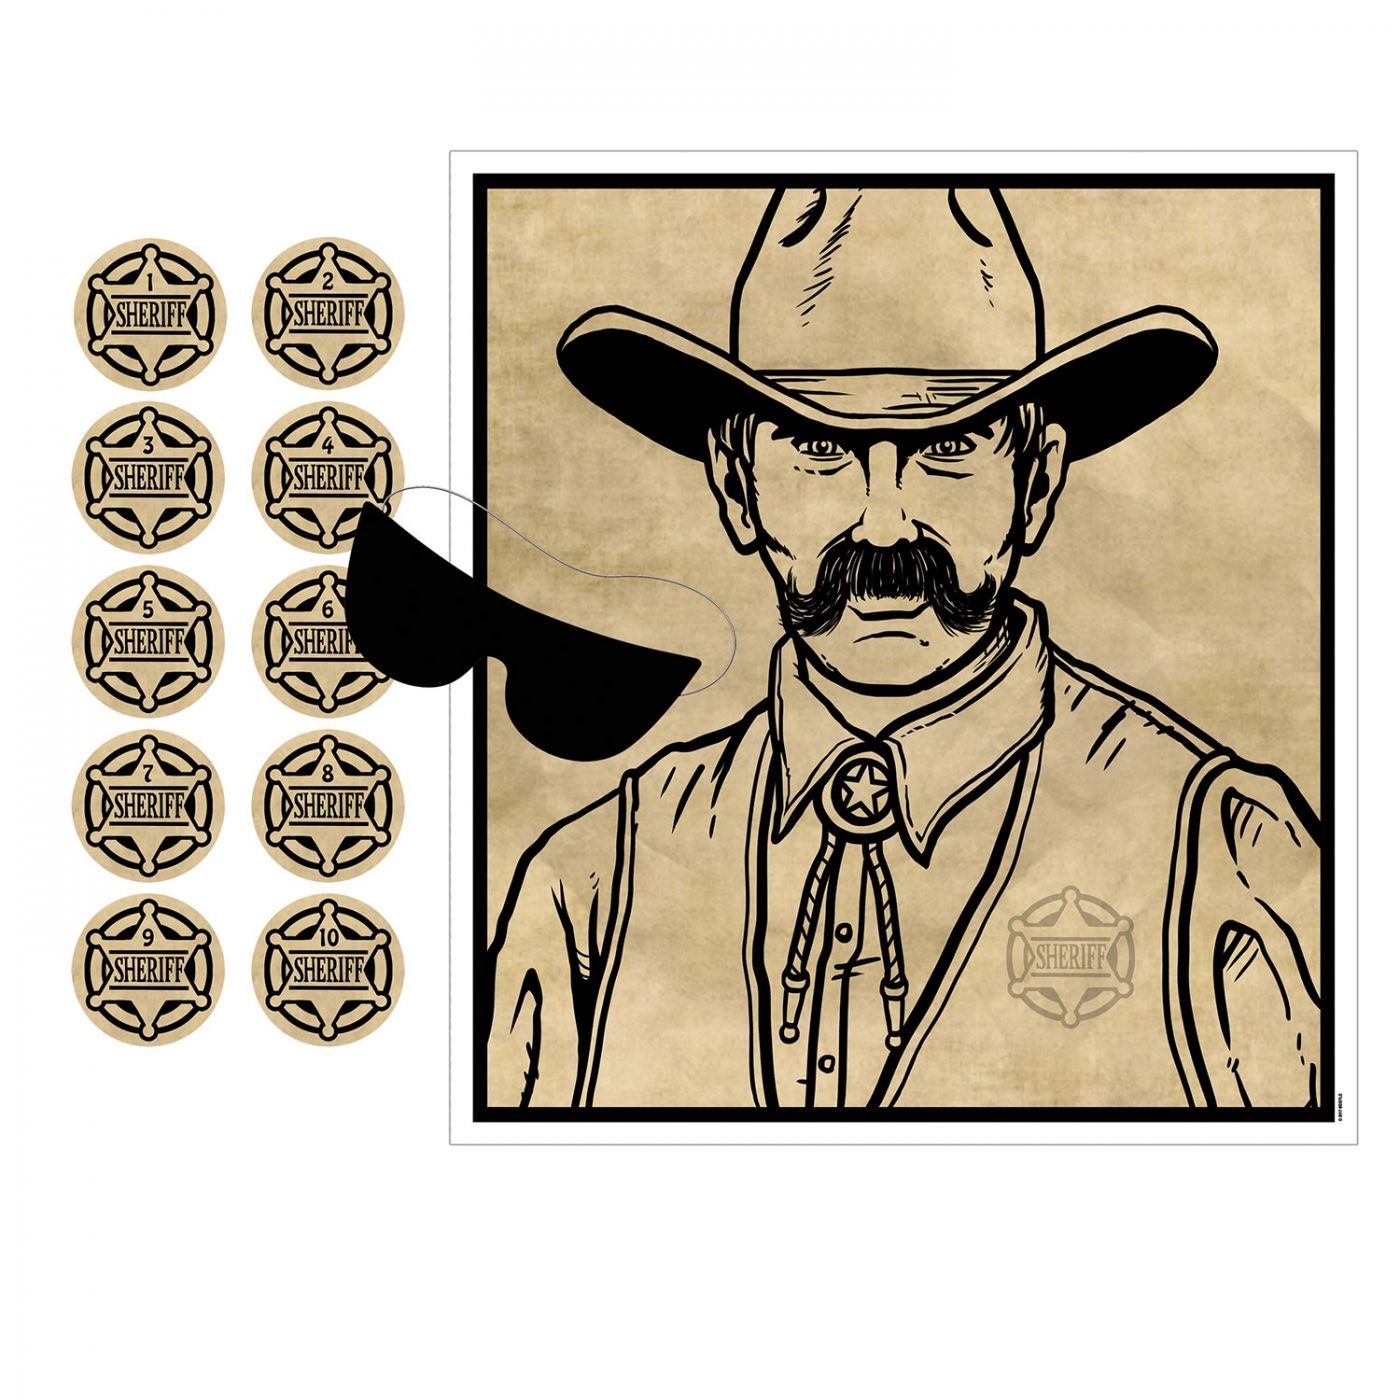 Pin The Badge On The Sheriff Game (24) image